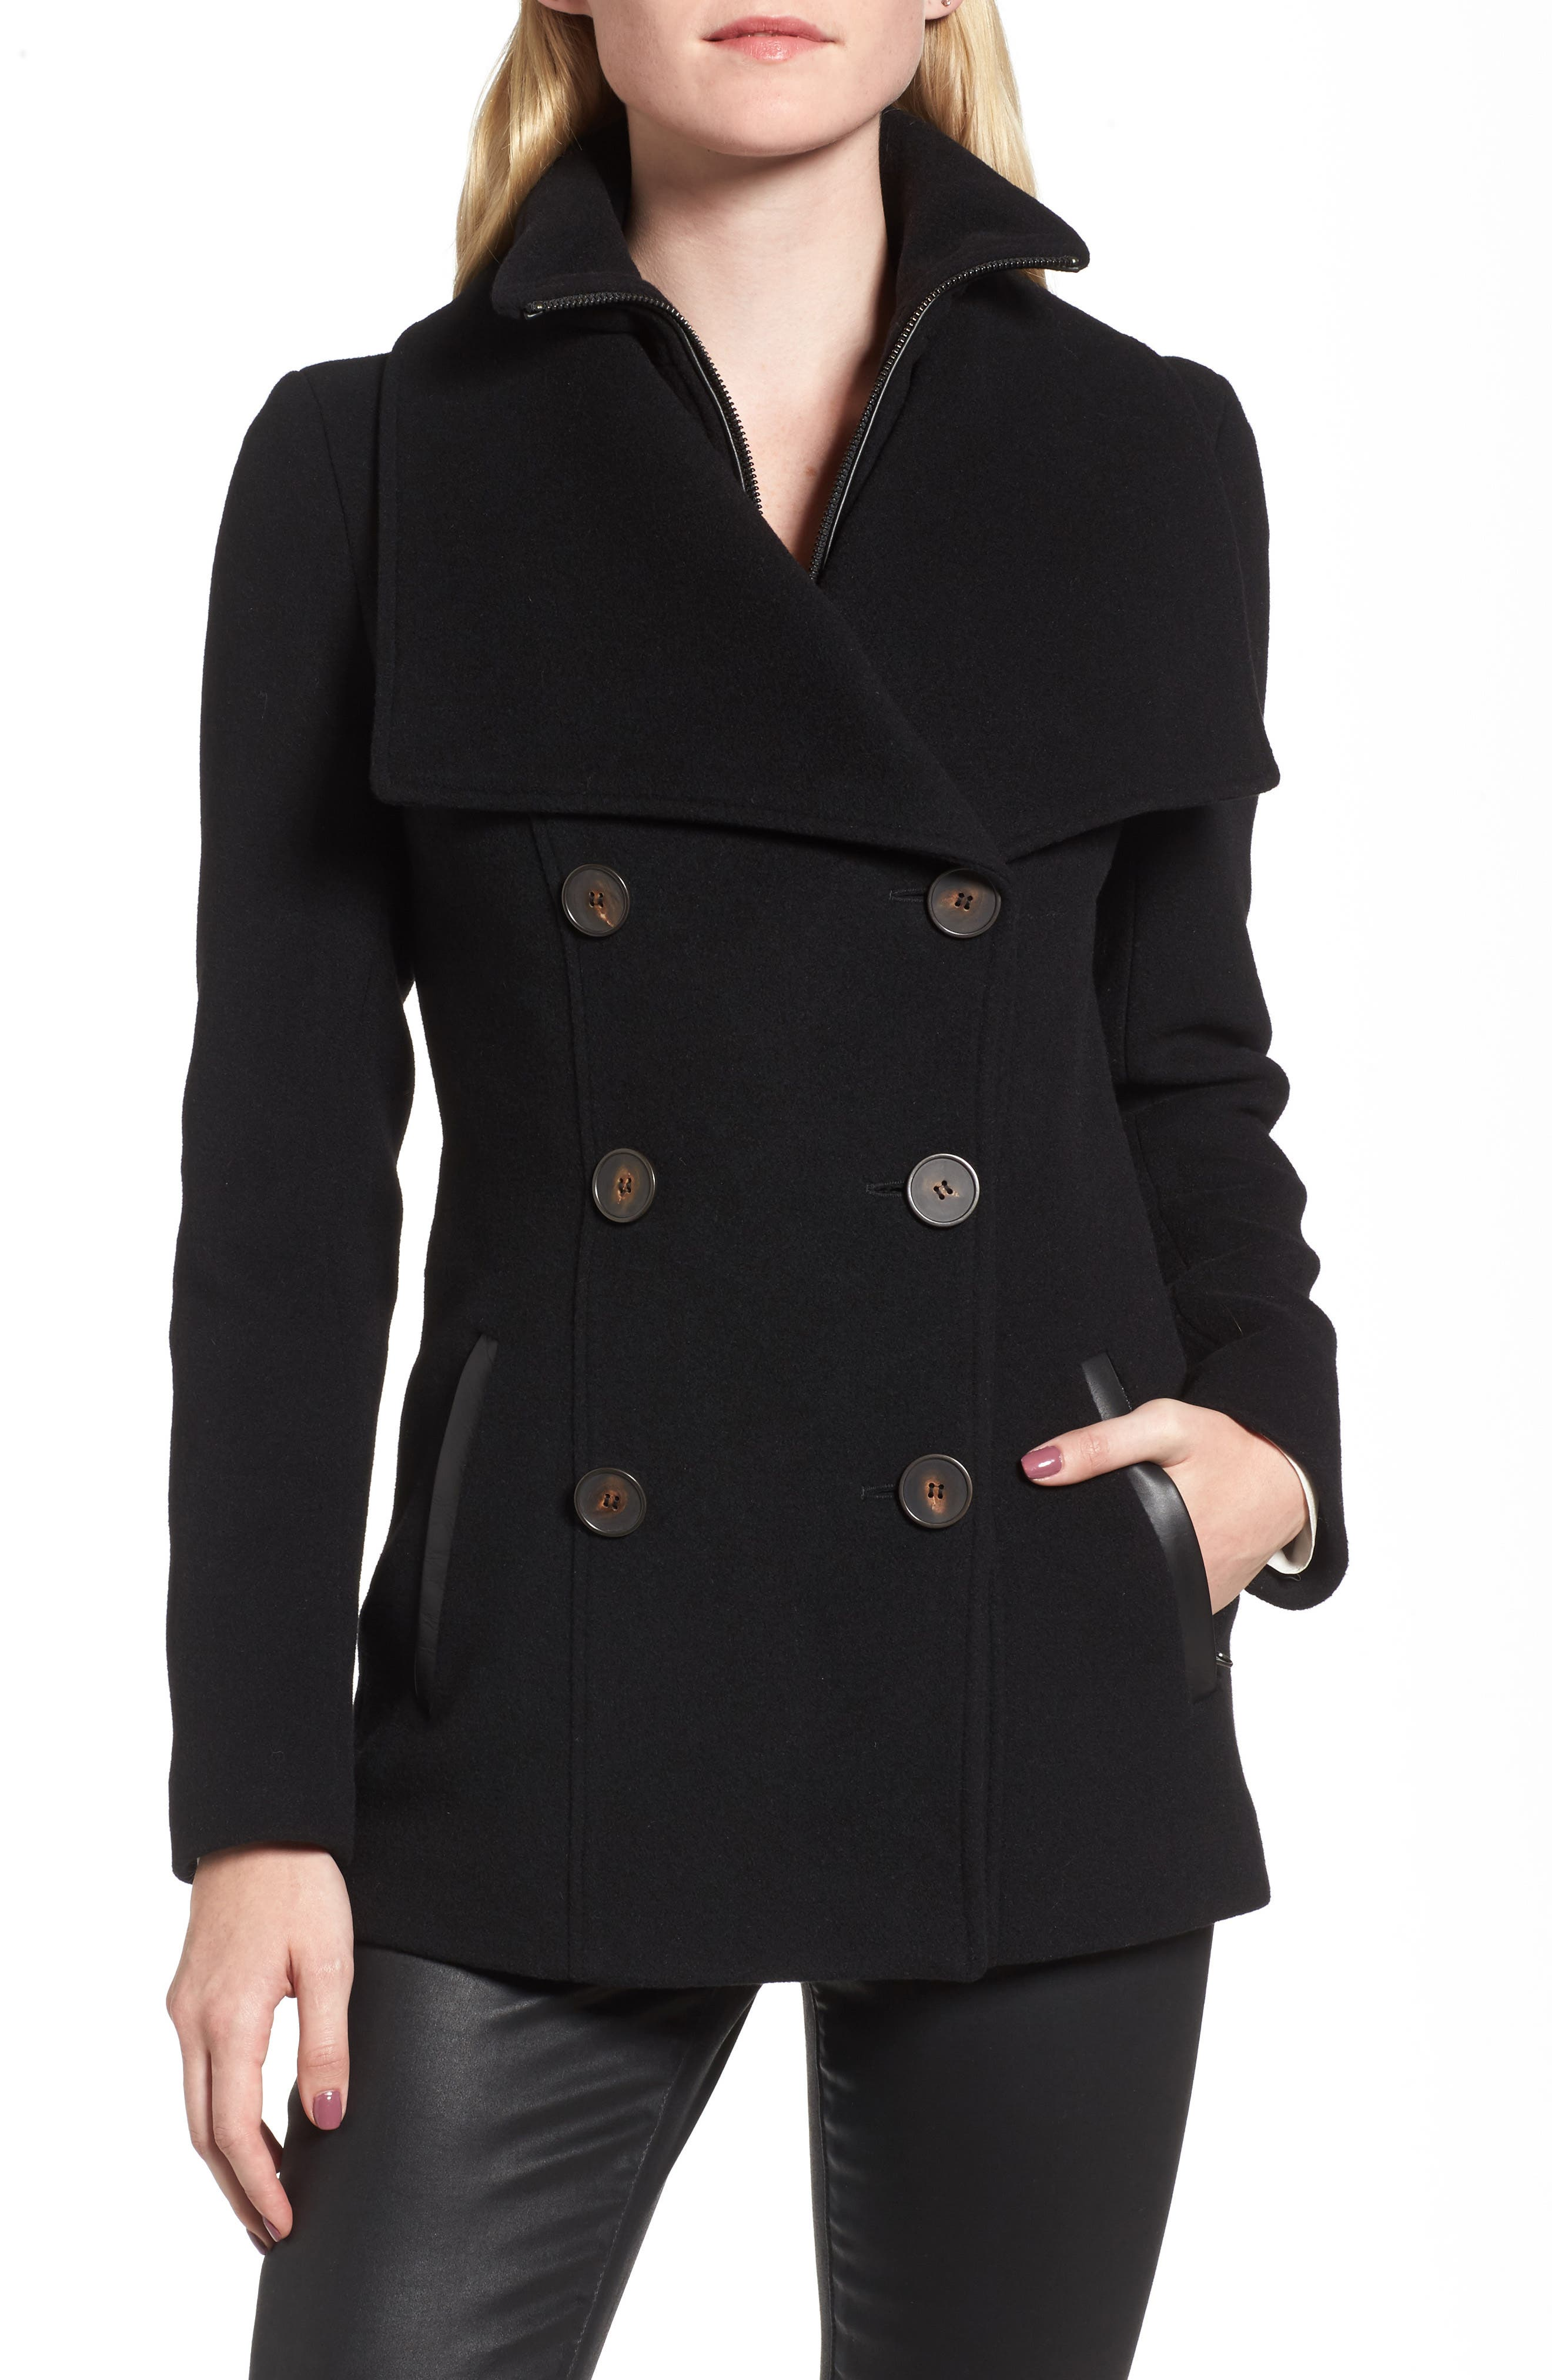 Norissa Double-Breasted Wool Blend Peacoat,                             Main thumbnail 1, color,                             001